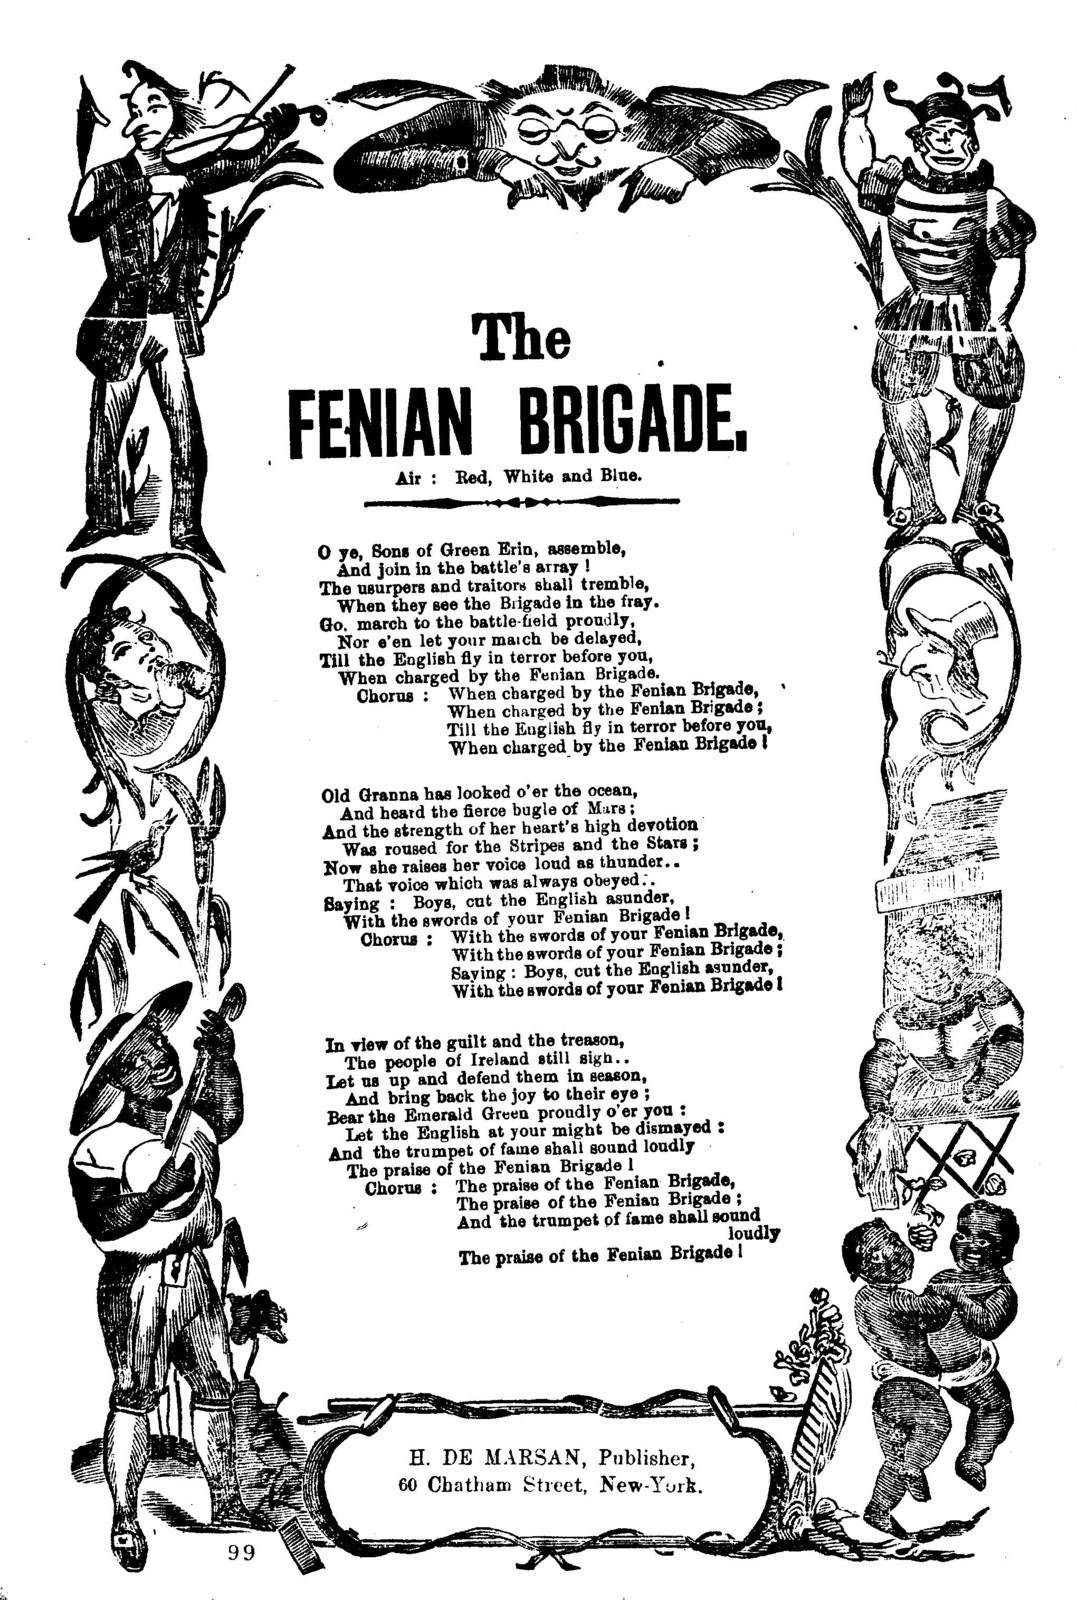 The Fenian Brigade. Air: Red white and blue. H. De Marsan, Publisher, 60 Chatham Street, New York